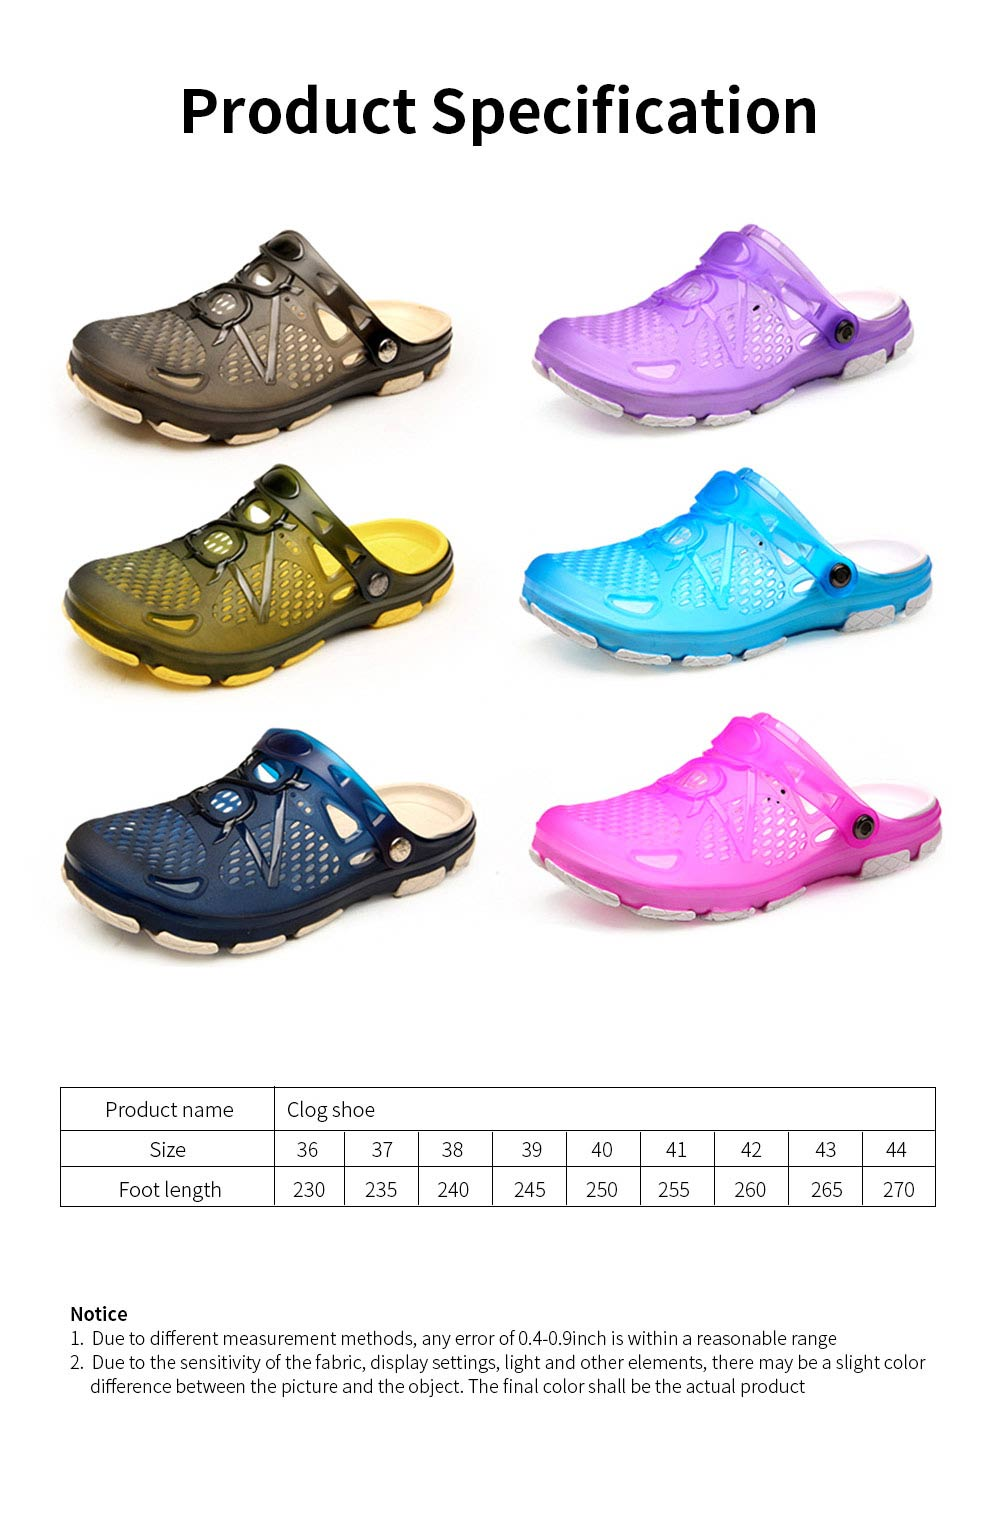 Clog Shoe Comfort Anti-slip Casual Water Shoe Beach Footwear Summer Slippers Sandal for Men Women 6